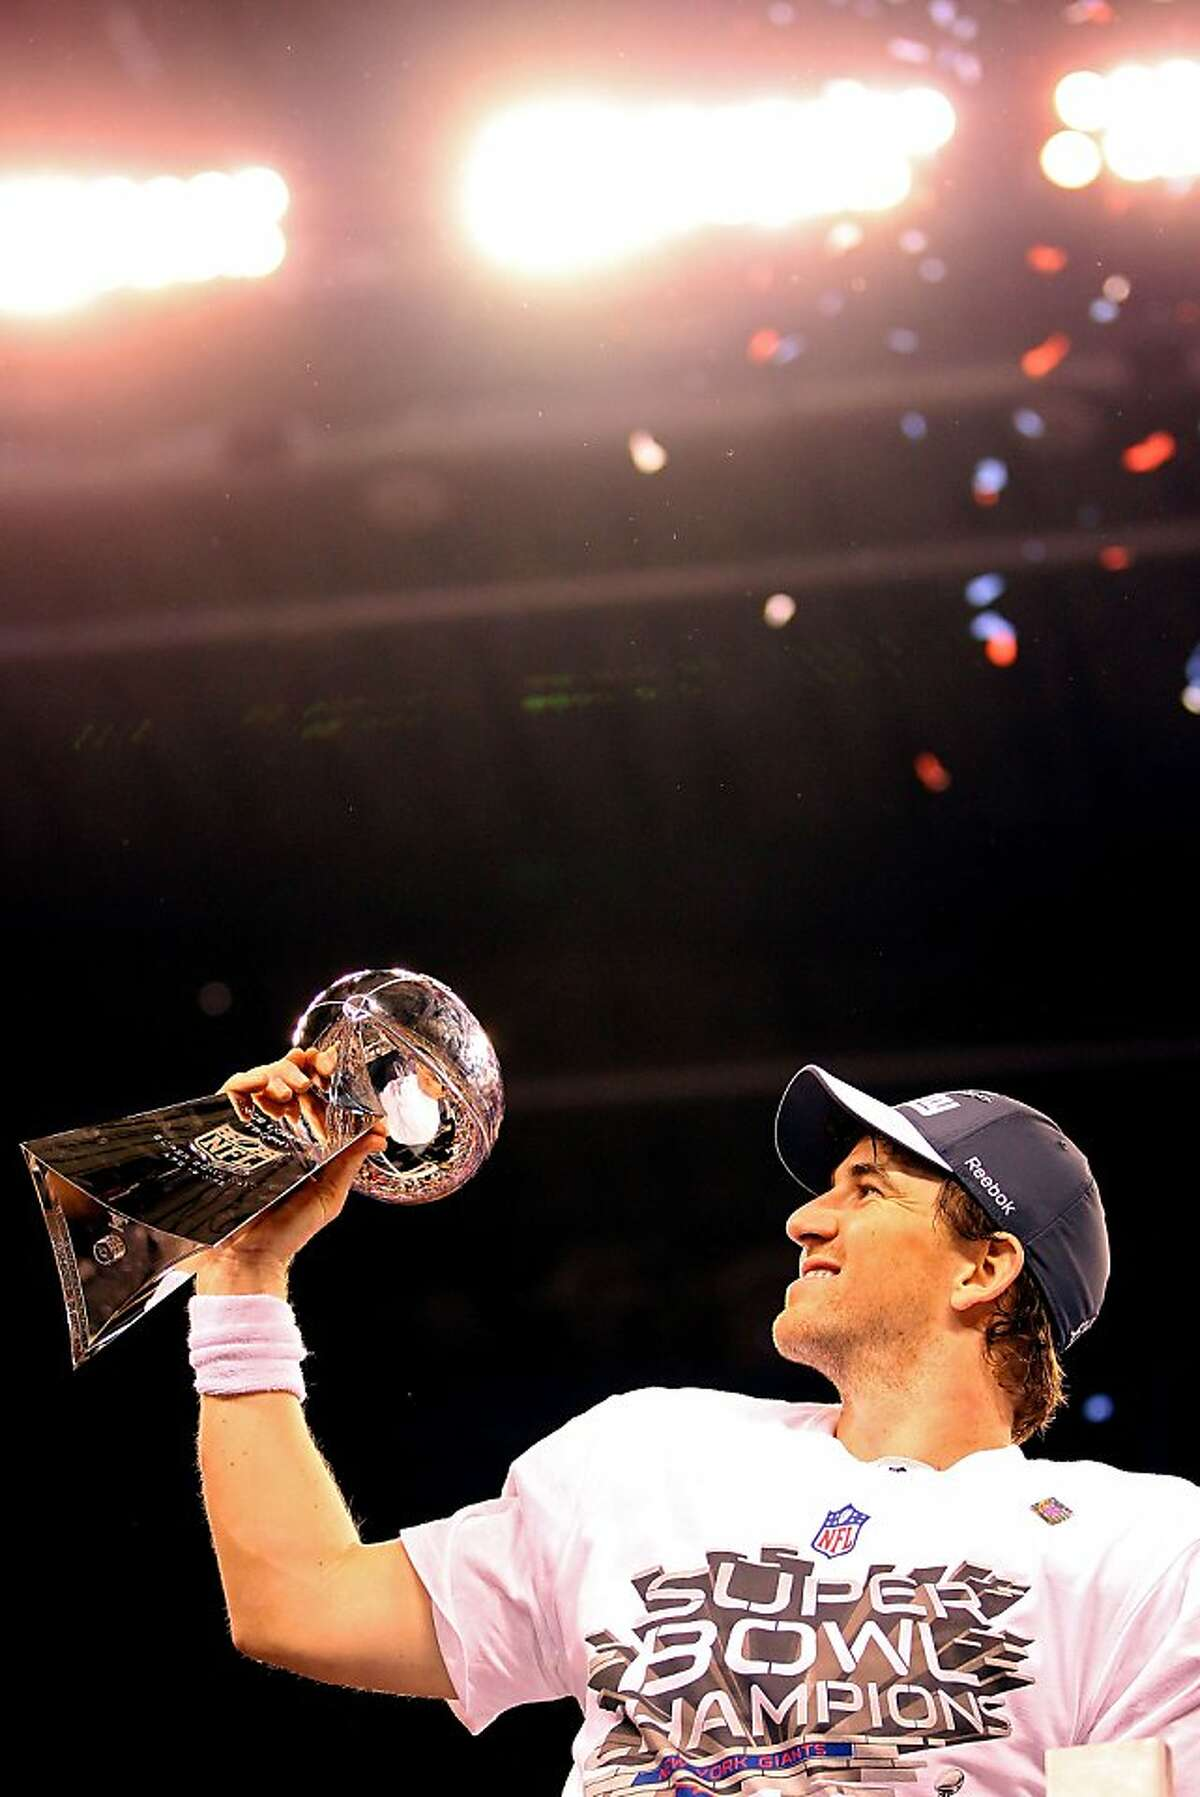 INDIANAPOLIS, IN - FEBRUARY 05: Quarterback Eli Manning #10 of the New York Giants poses with the Vince Lombardi Trophy after the Giants defeated the Patriots by a score of 21-17 in Super Bowl XLVI at Lucas Oil Stadium on February 5, 2012 in Indianapolis, Indiana. (Photo by Ezra Shaw/Getty Images)